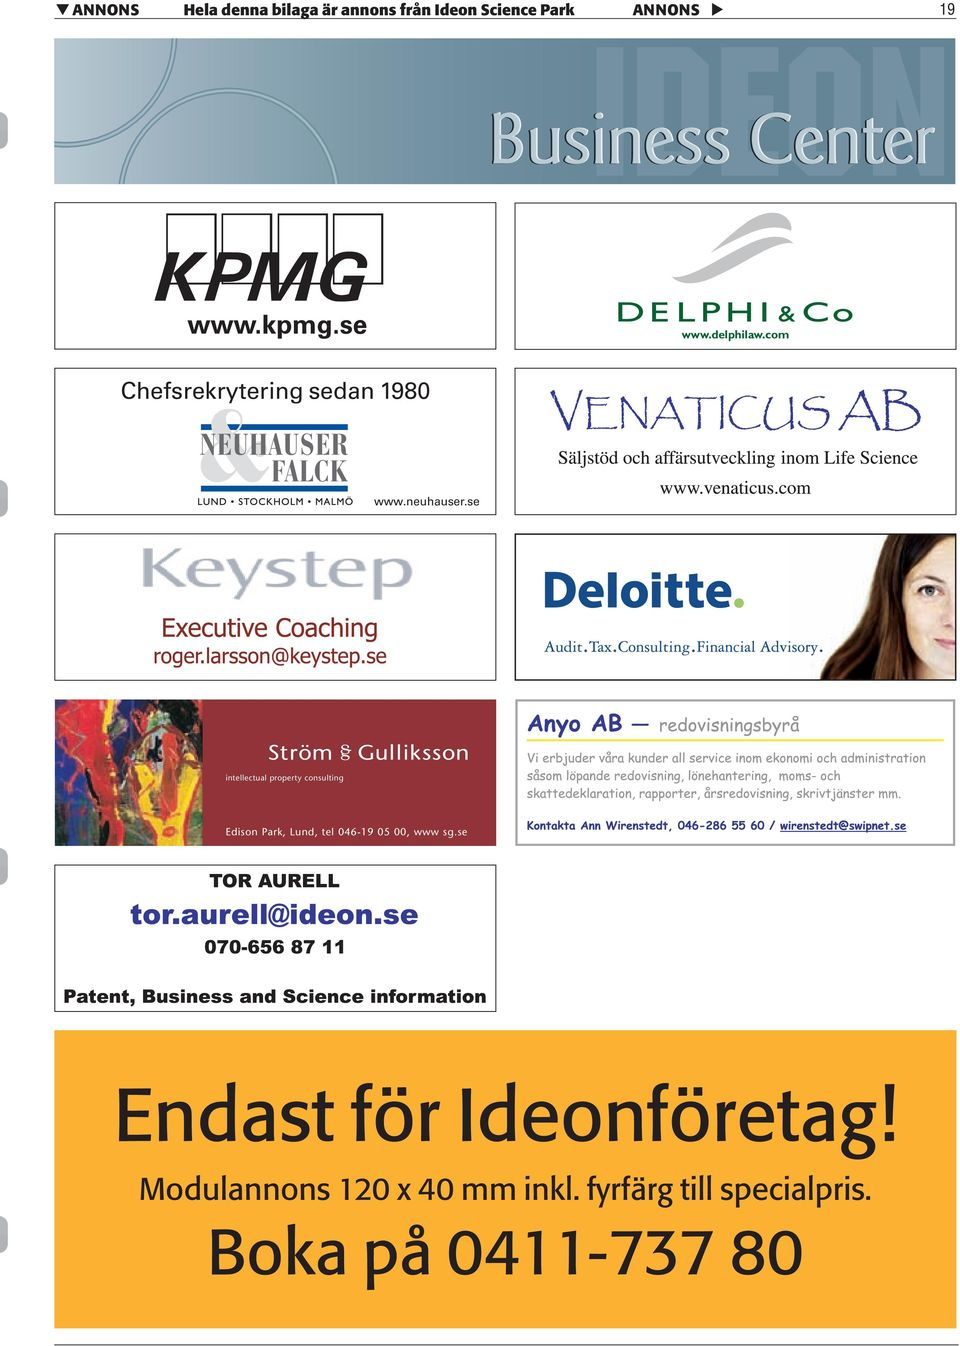 se intellectual property consulting Edison Park, Lund, tel 046-19 05 00, www